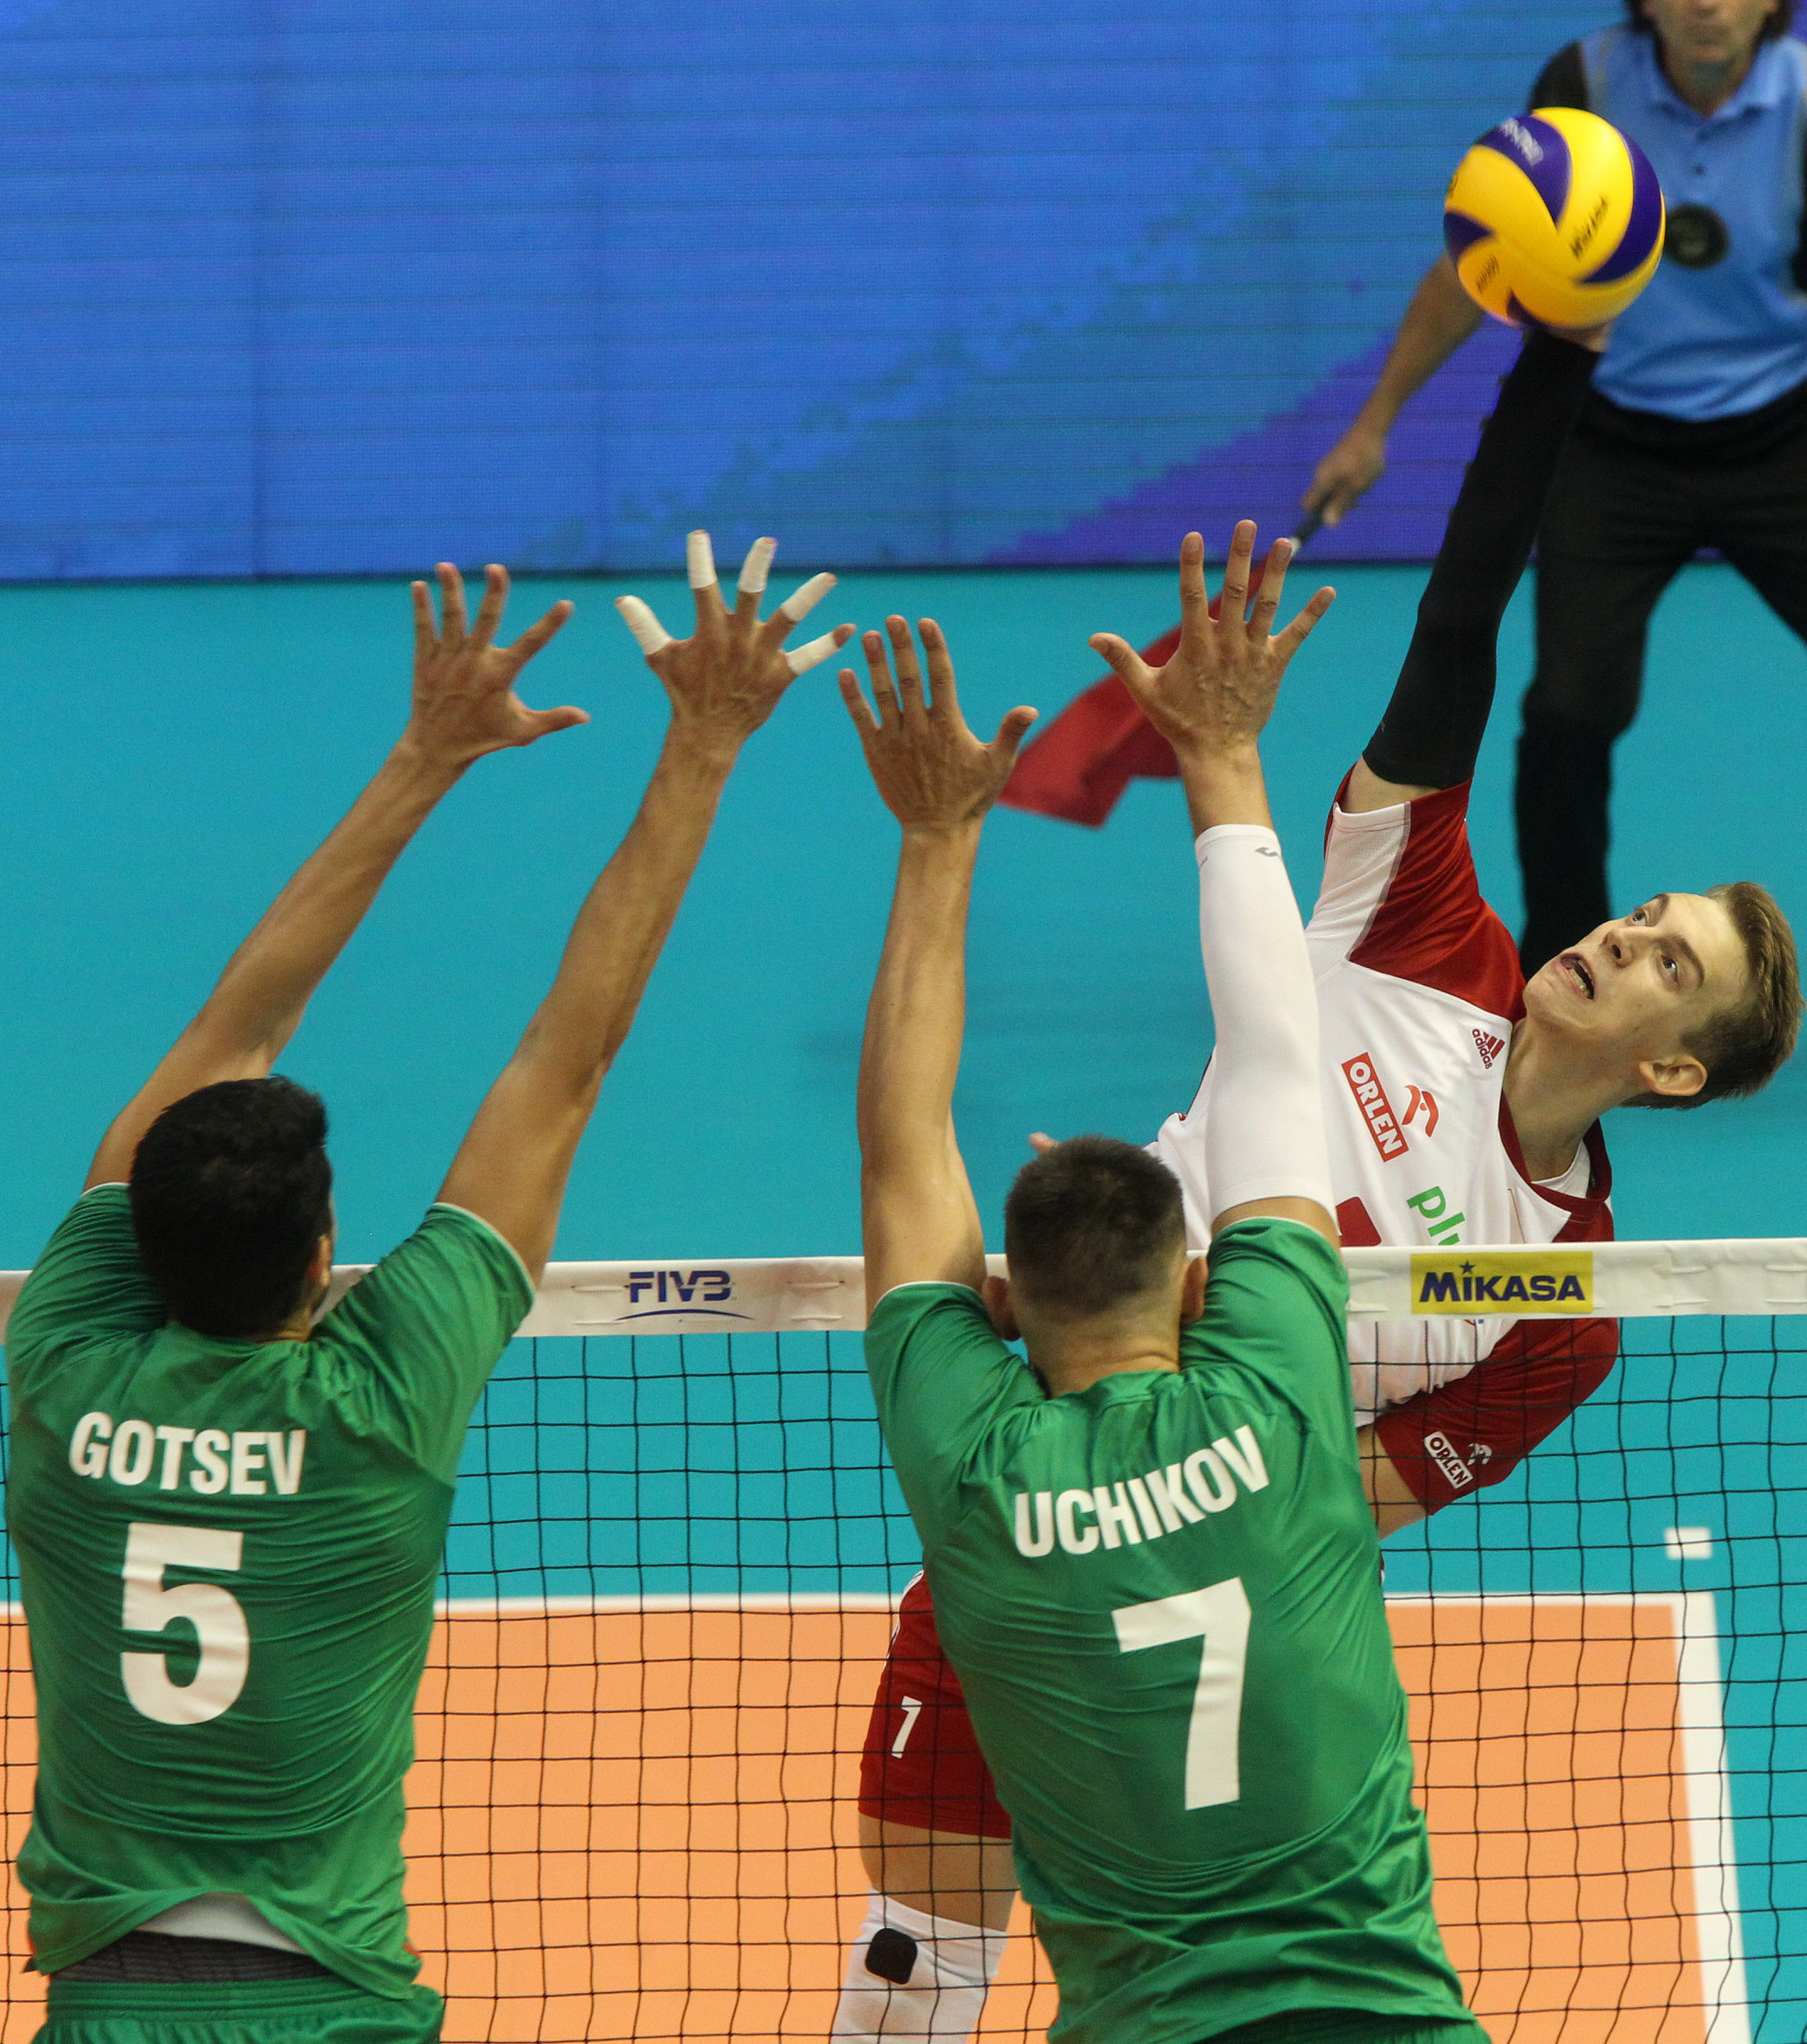 World champions Poland defeated hosts Bulgaria and remain unbeaten ©FIVB